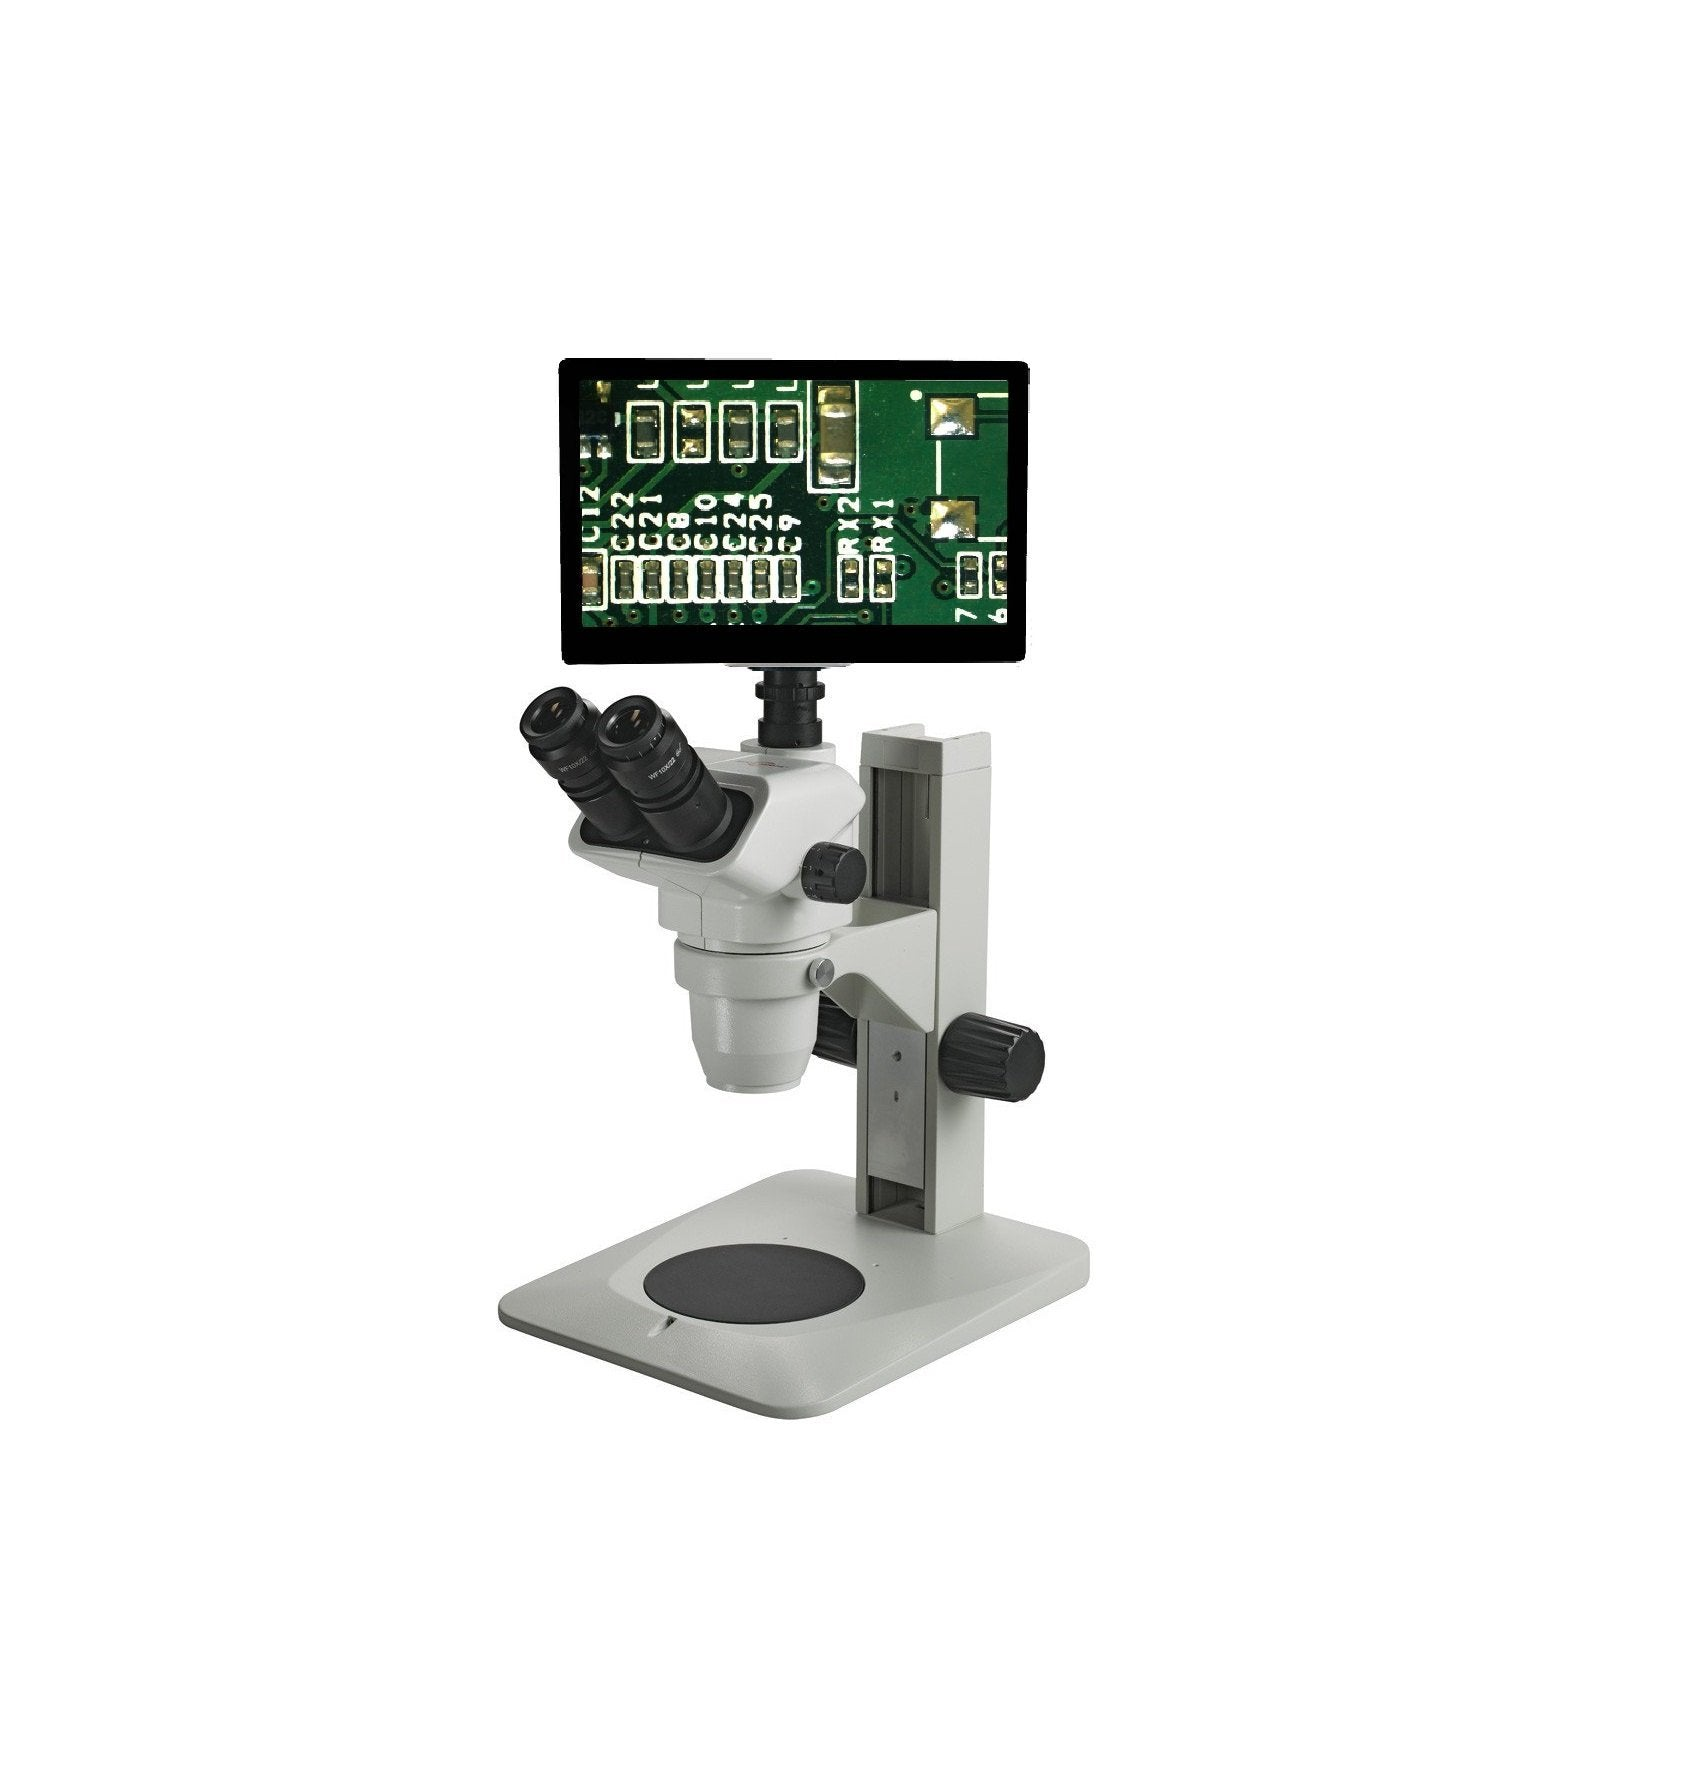 Accu-Scope 3076 Plain Stand Digital Stereo Microscope 0.67x - 4.5x